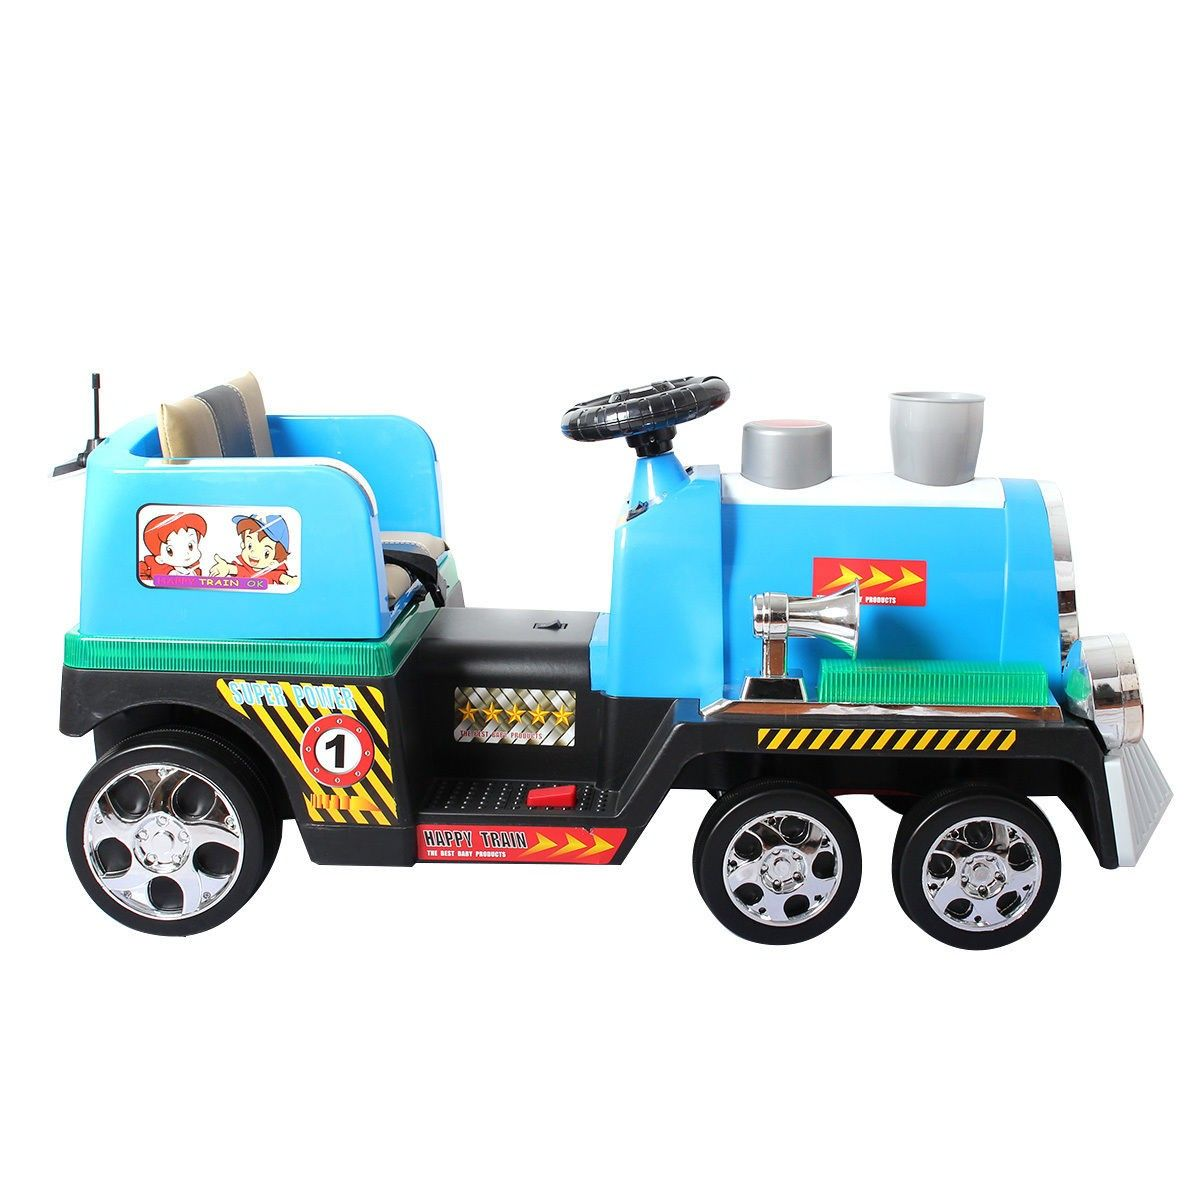 2 4g kids ride on train electric remote control train w lights